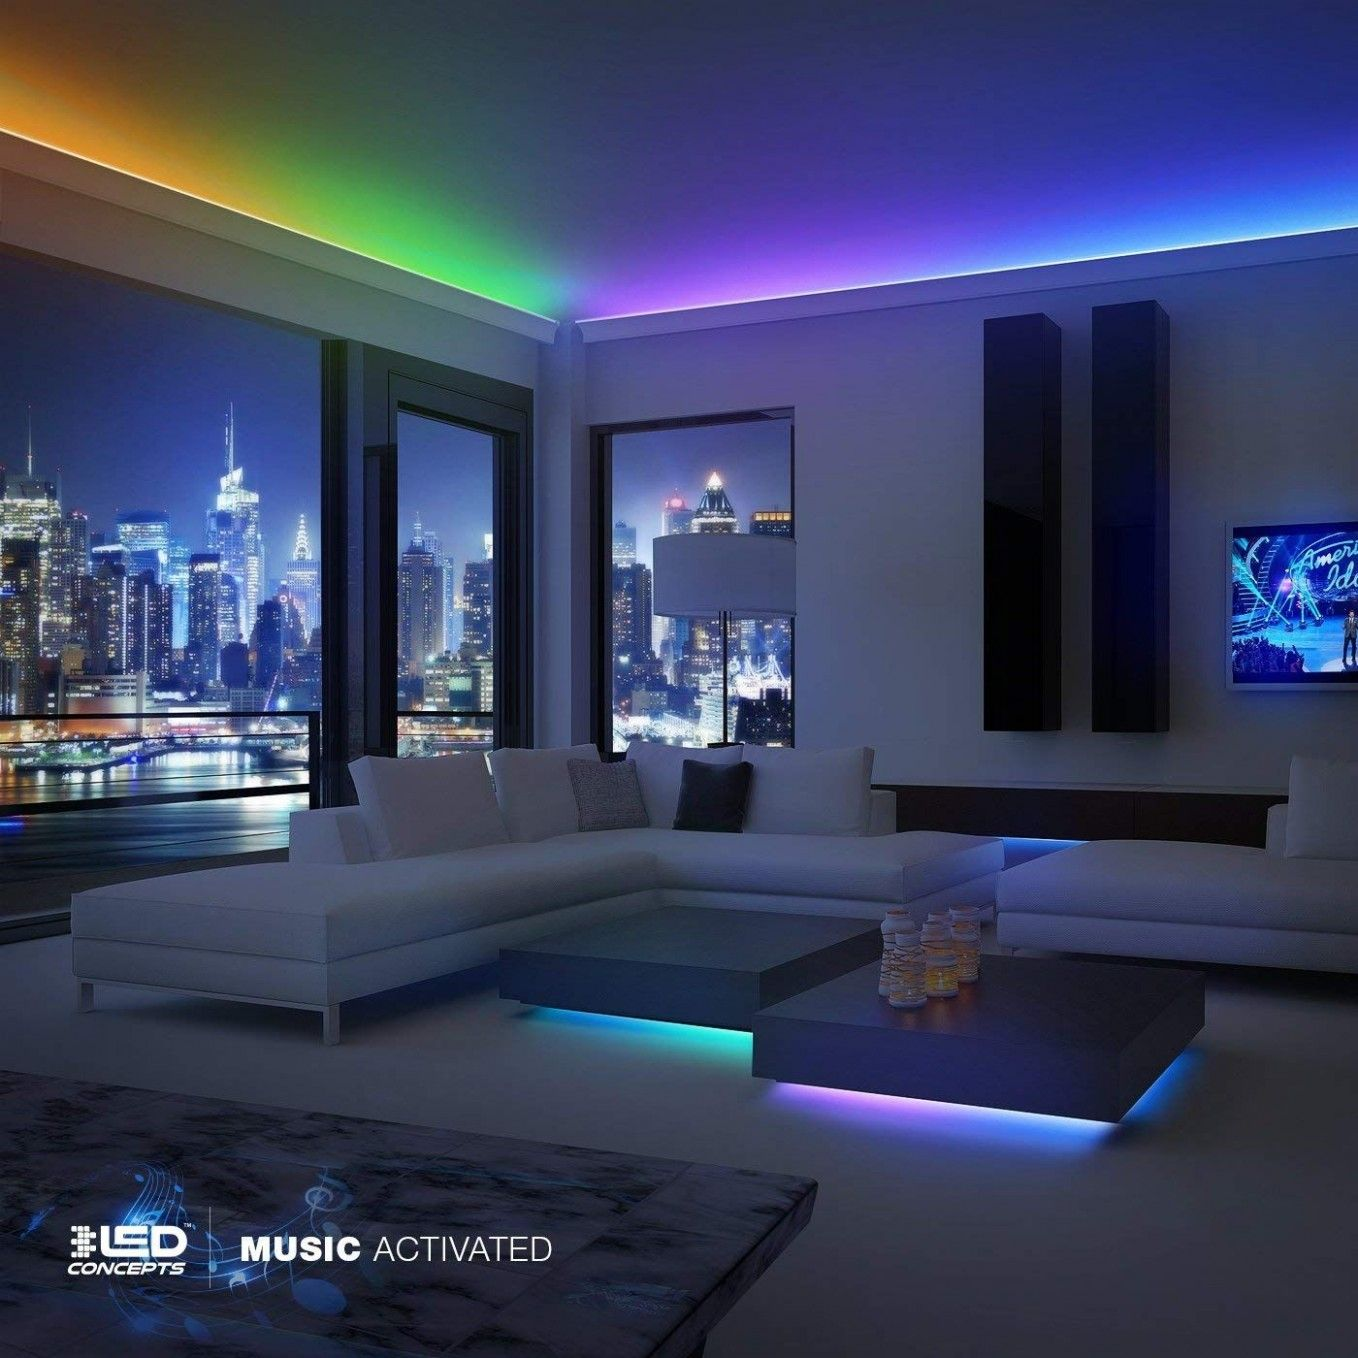 Led Light Strip For Bedroom Ceiling Strip Lighting Led Rope Lights Waterproof Led Lights